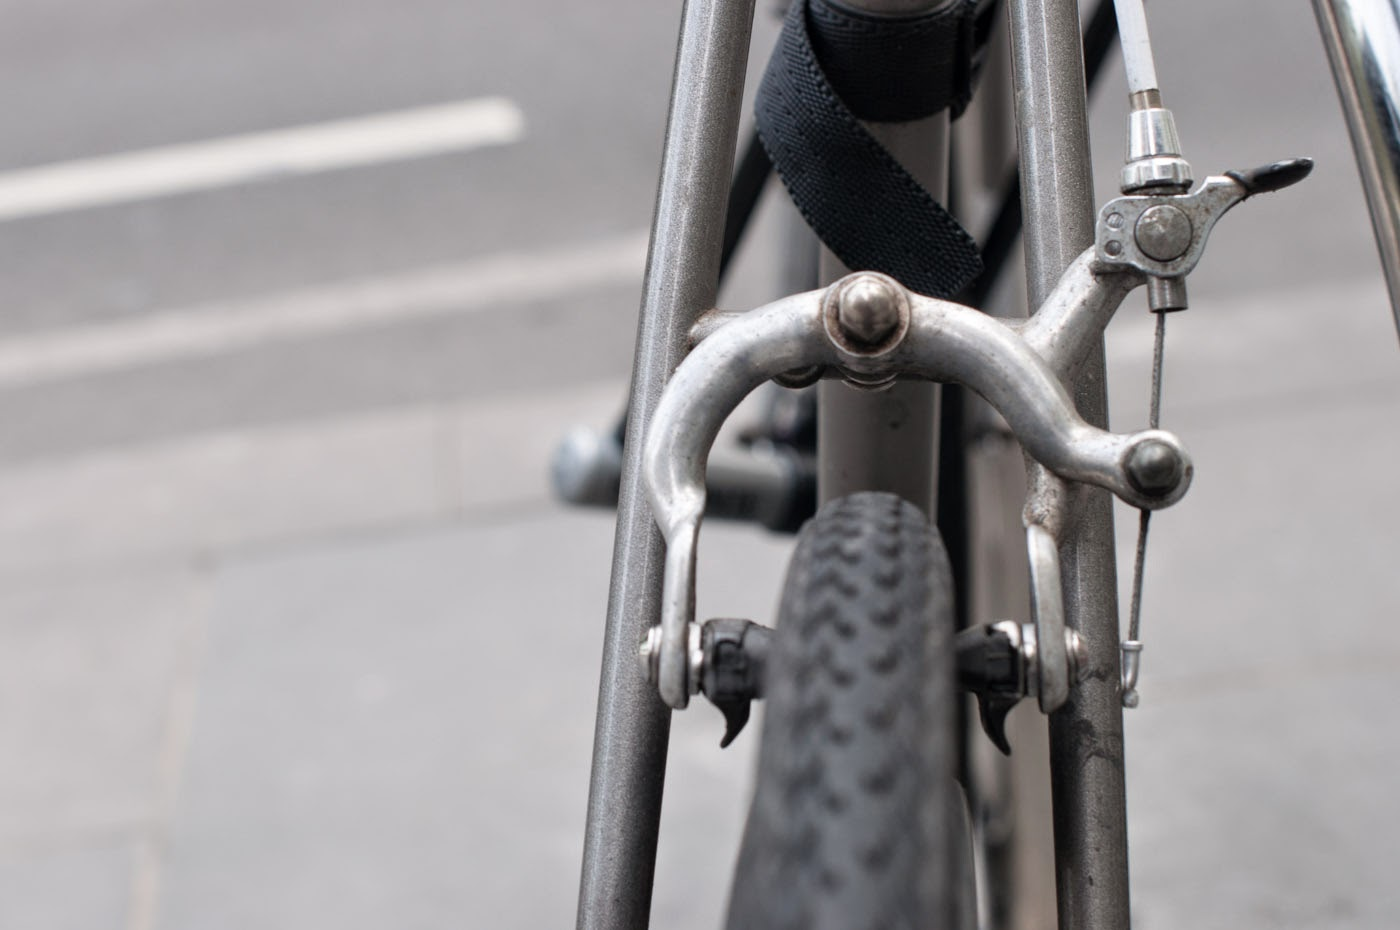 single speed, conversion, road bike, bicycle, Swanston street, Melbourne, Australia, the biketorialist, tim macauley, Macauley, detail, leather, frame, biketorialist, bespoke, custom, customisation, style, bike, bicycle, brake